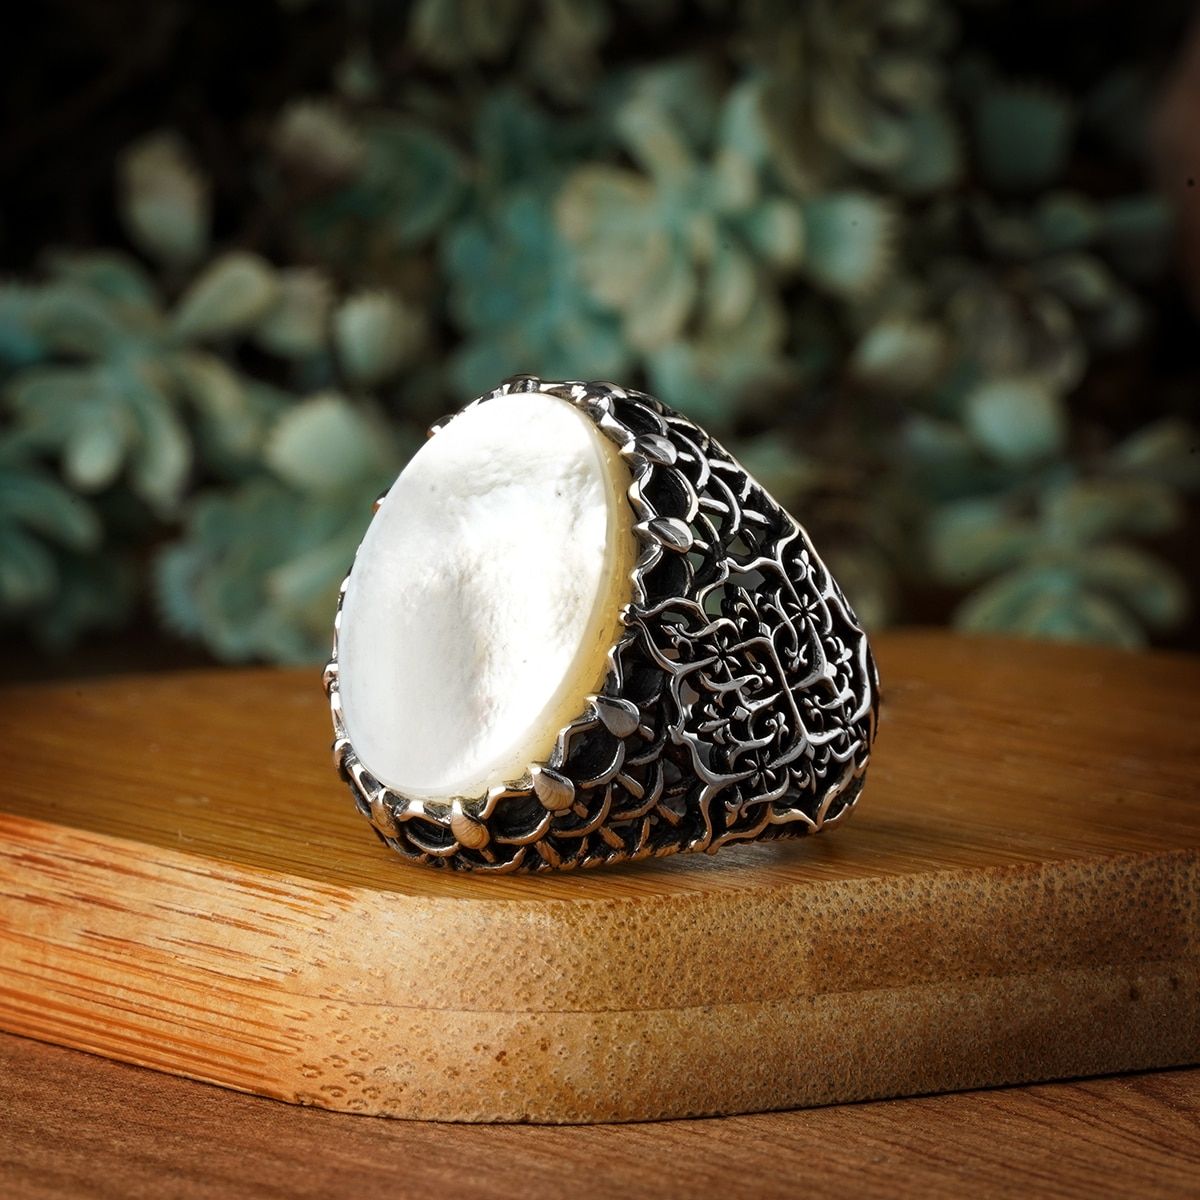 Guaranteed High-quality 925 Sterling Silver PEARL STONE ring Jewelry Made in Turkey in a luxurious way for men with gift